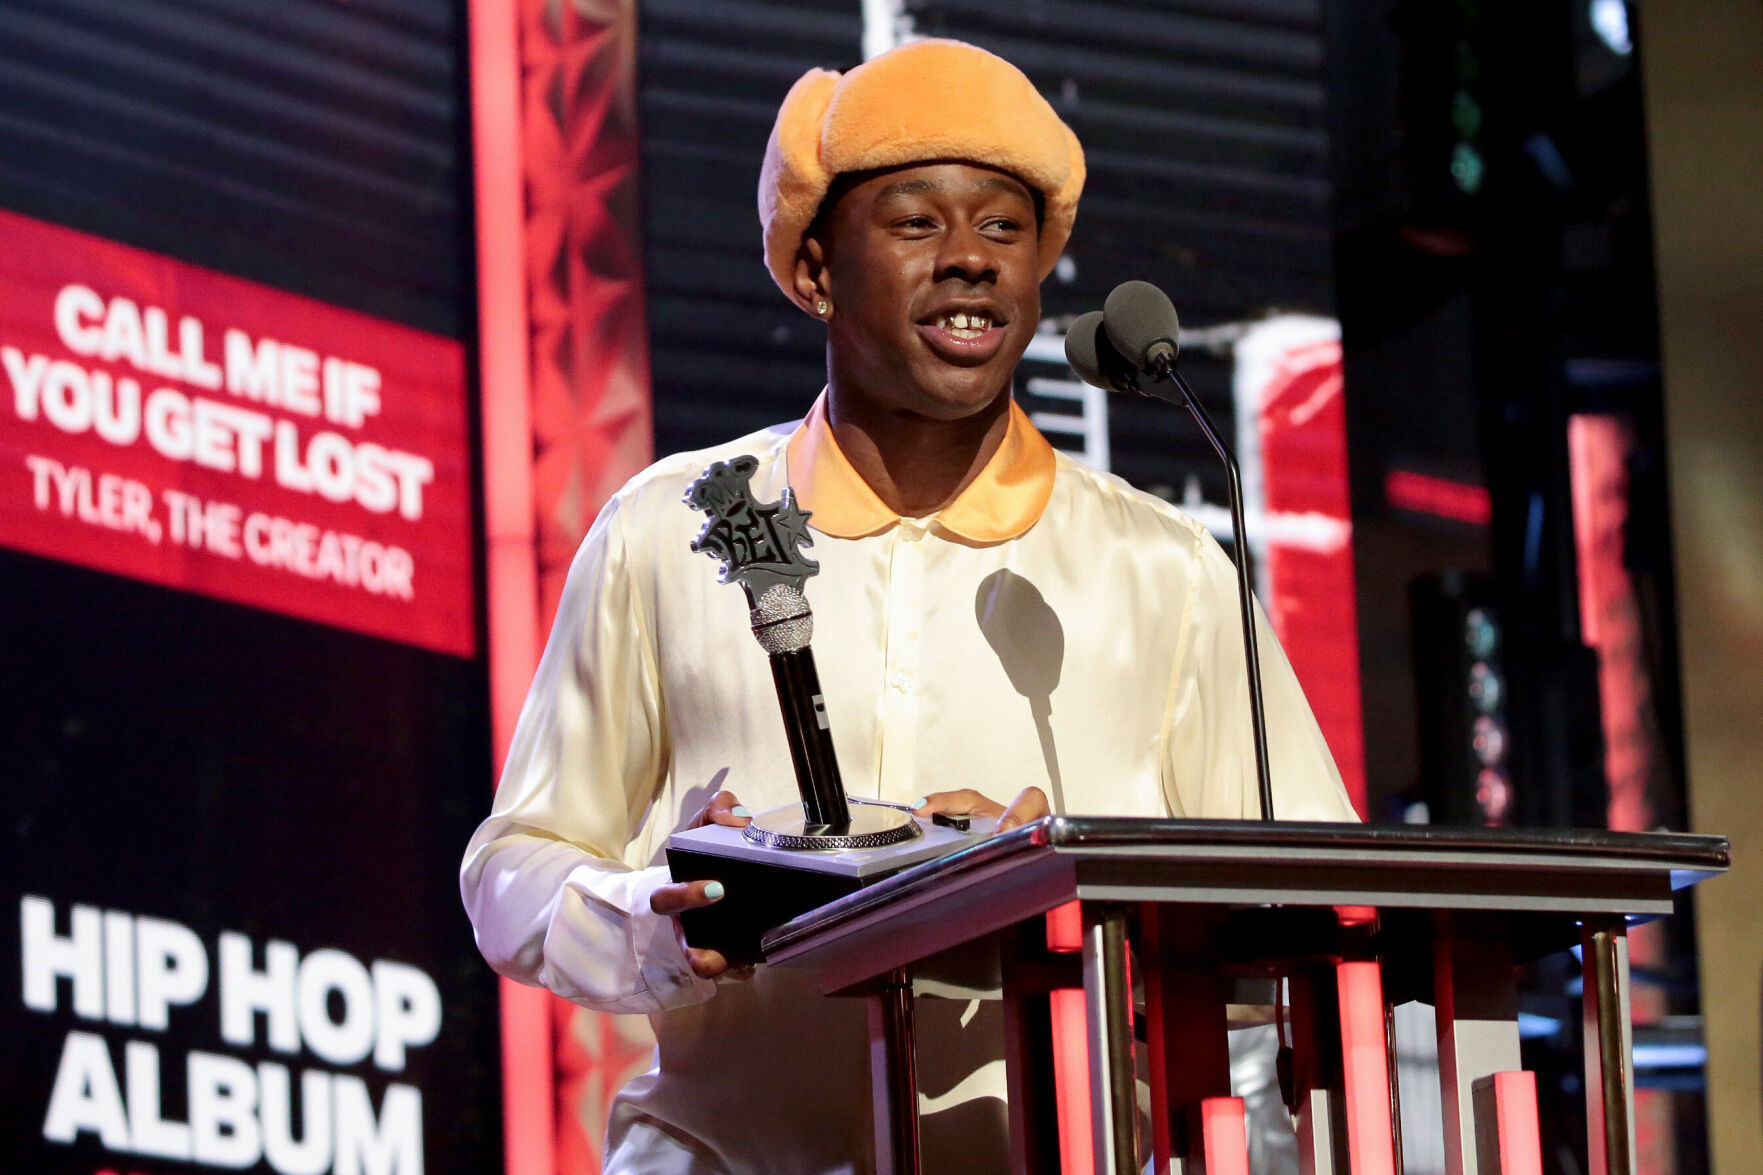 <p>Tyler, the Creator accepts the award for hip hop album of the year at the BET Awards.</p>